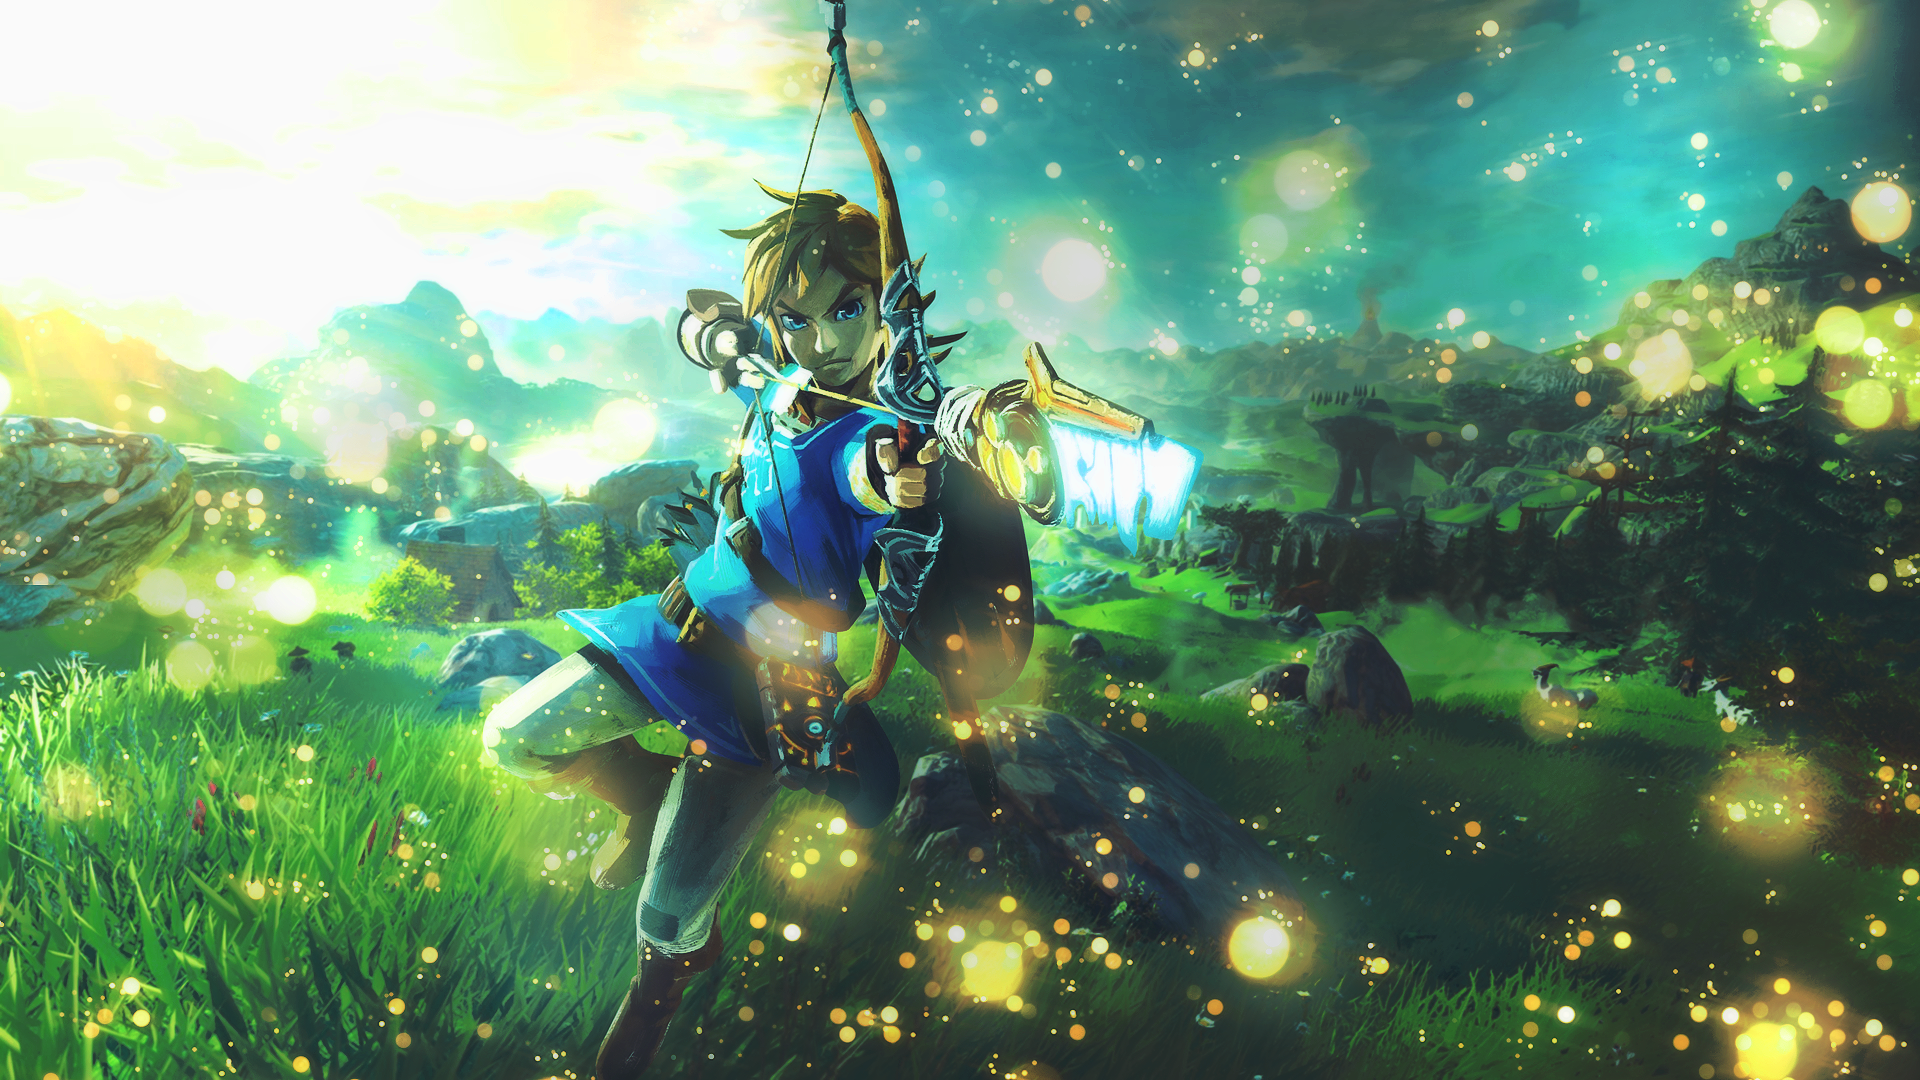 Free Download Zelda Breath Of The Wild Wallpaper By Yatamirror